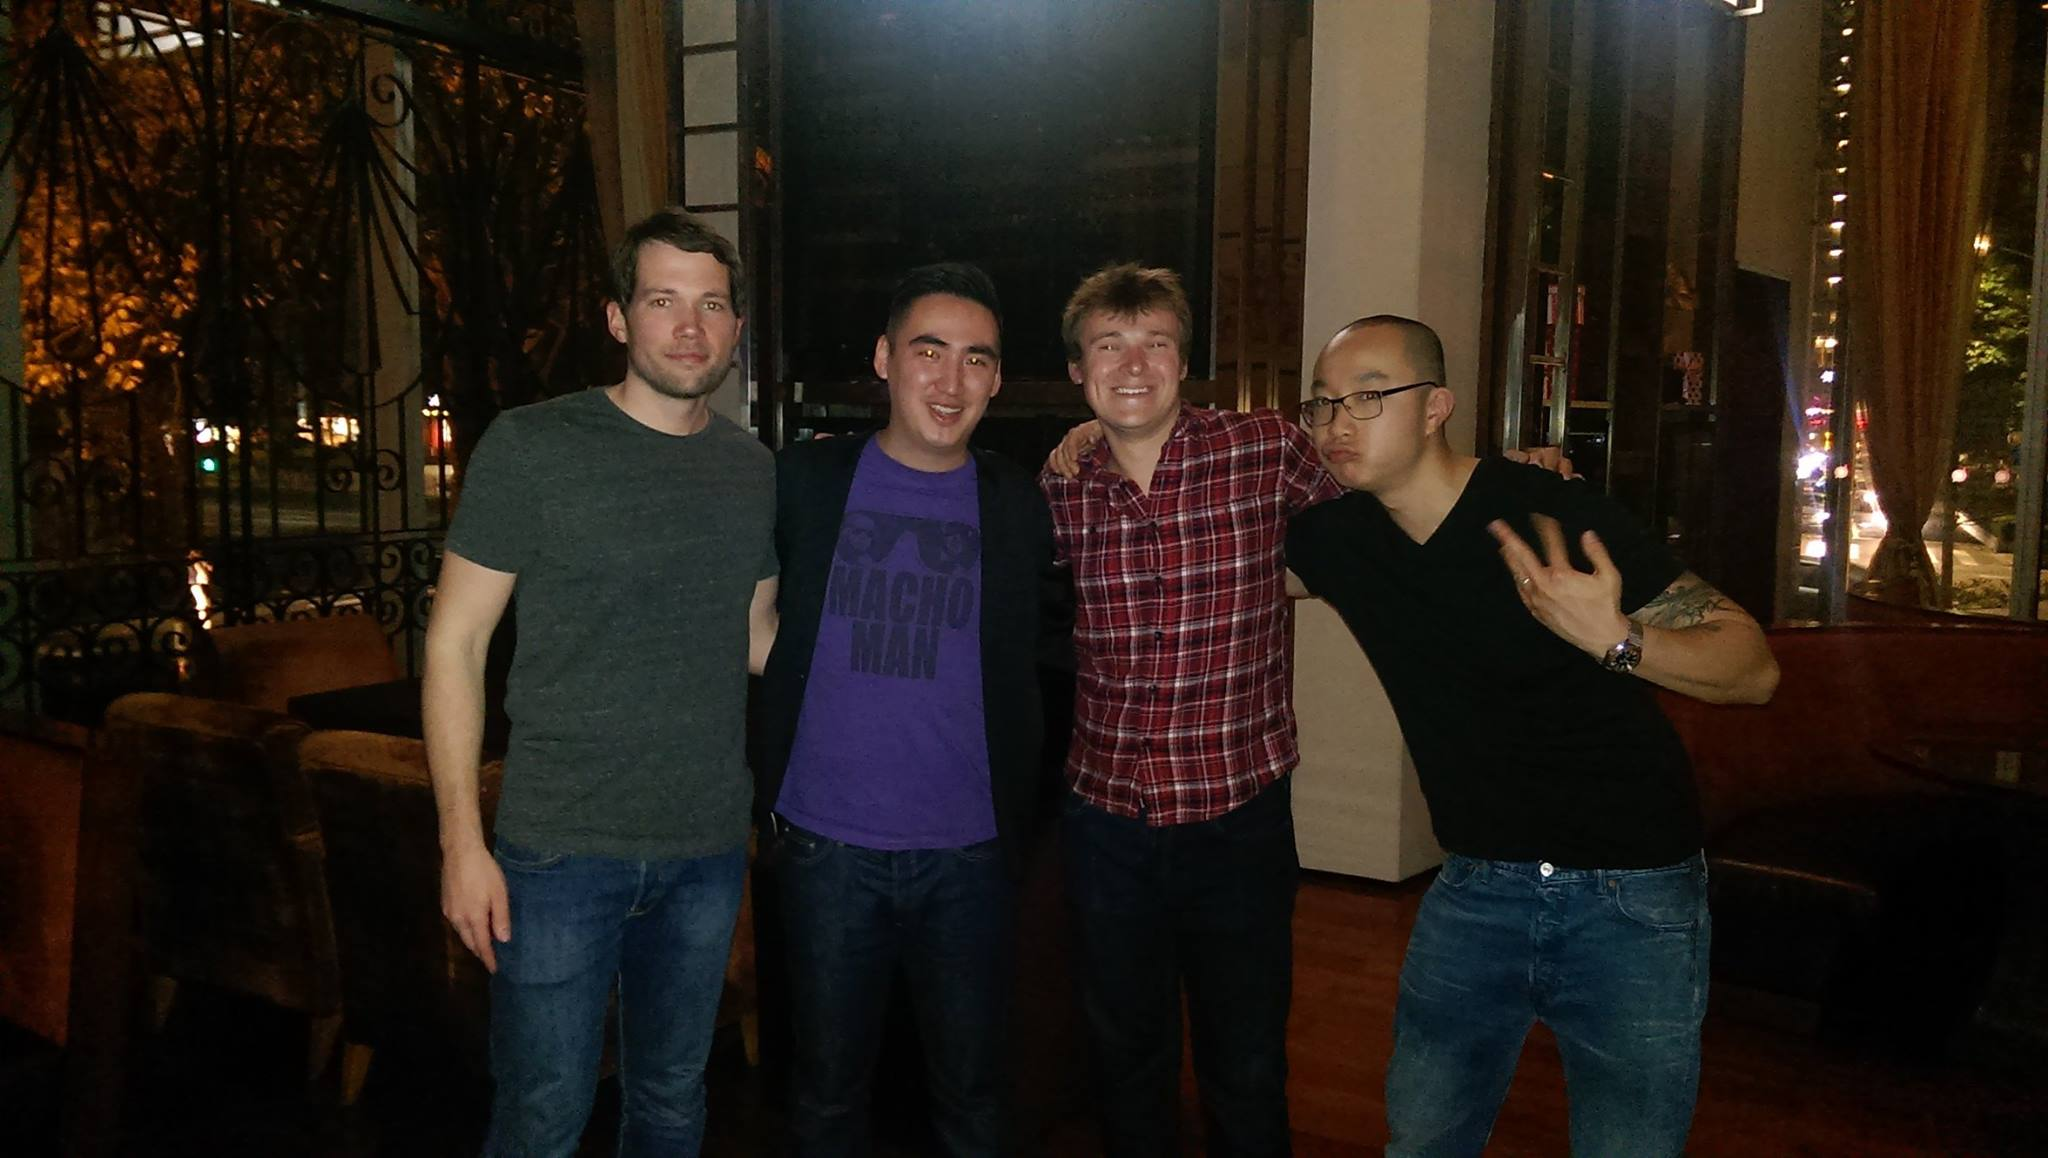 Debut in Guangzhou after filming an episode of the (possibly Government propoganda laden) show China Chats with Paul Johnson, Sean Hebert and Tamby Chan